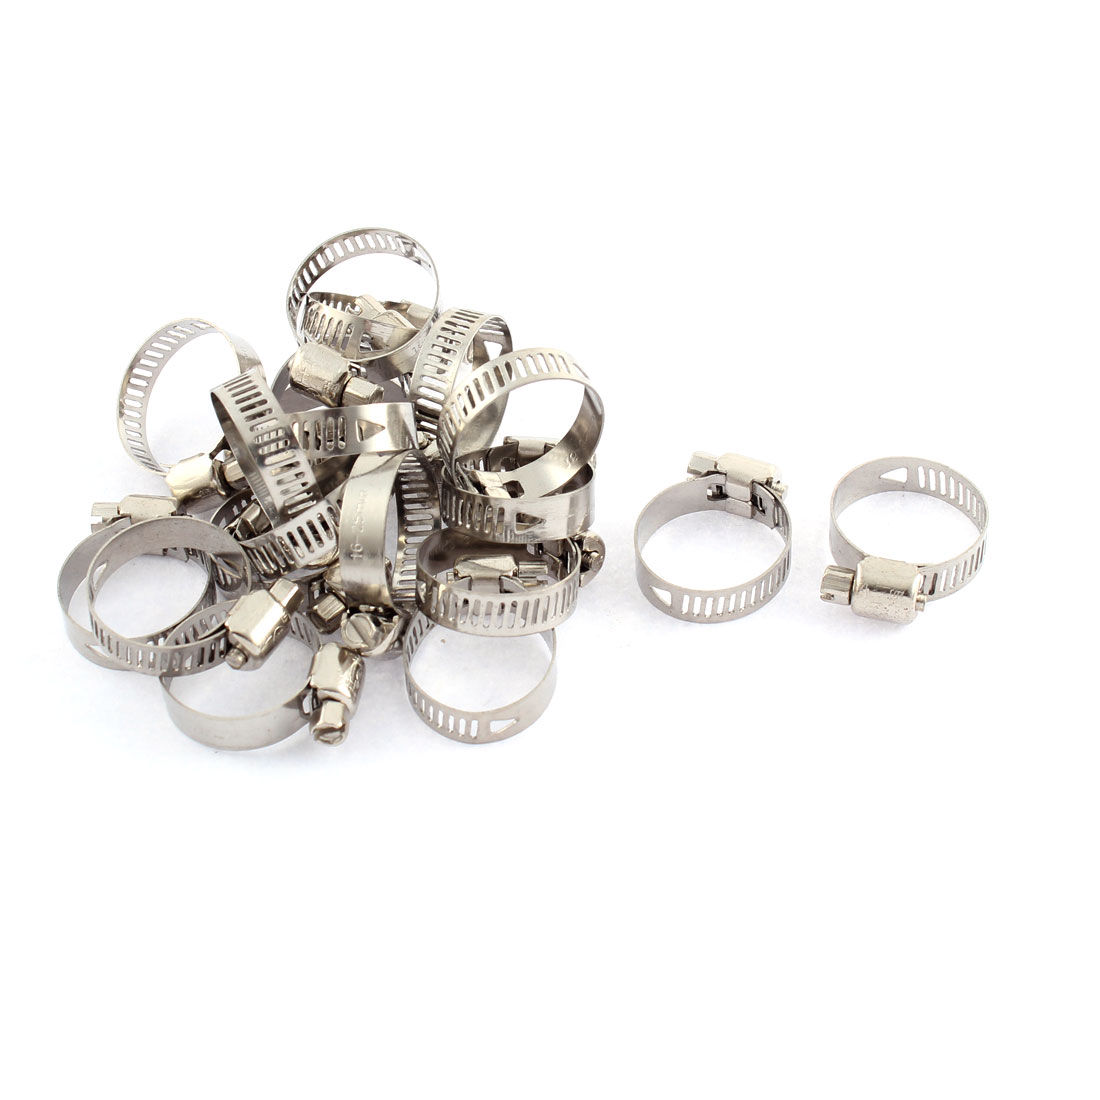 Adjustable 16mm-25mm Range Band Stainless Steel Worm Hose Clip Clamp 20 Pcs